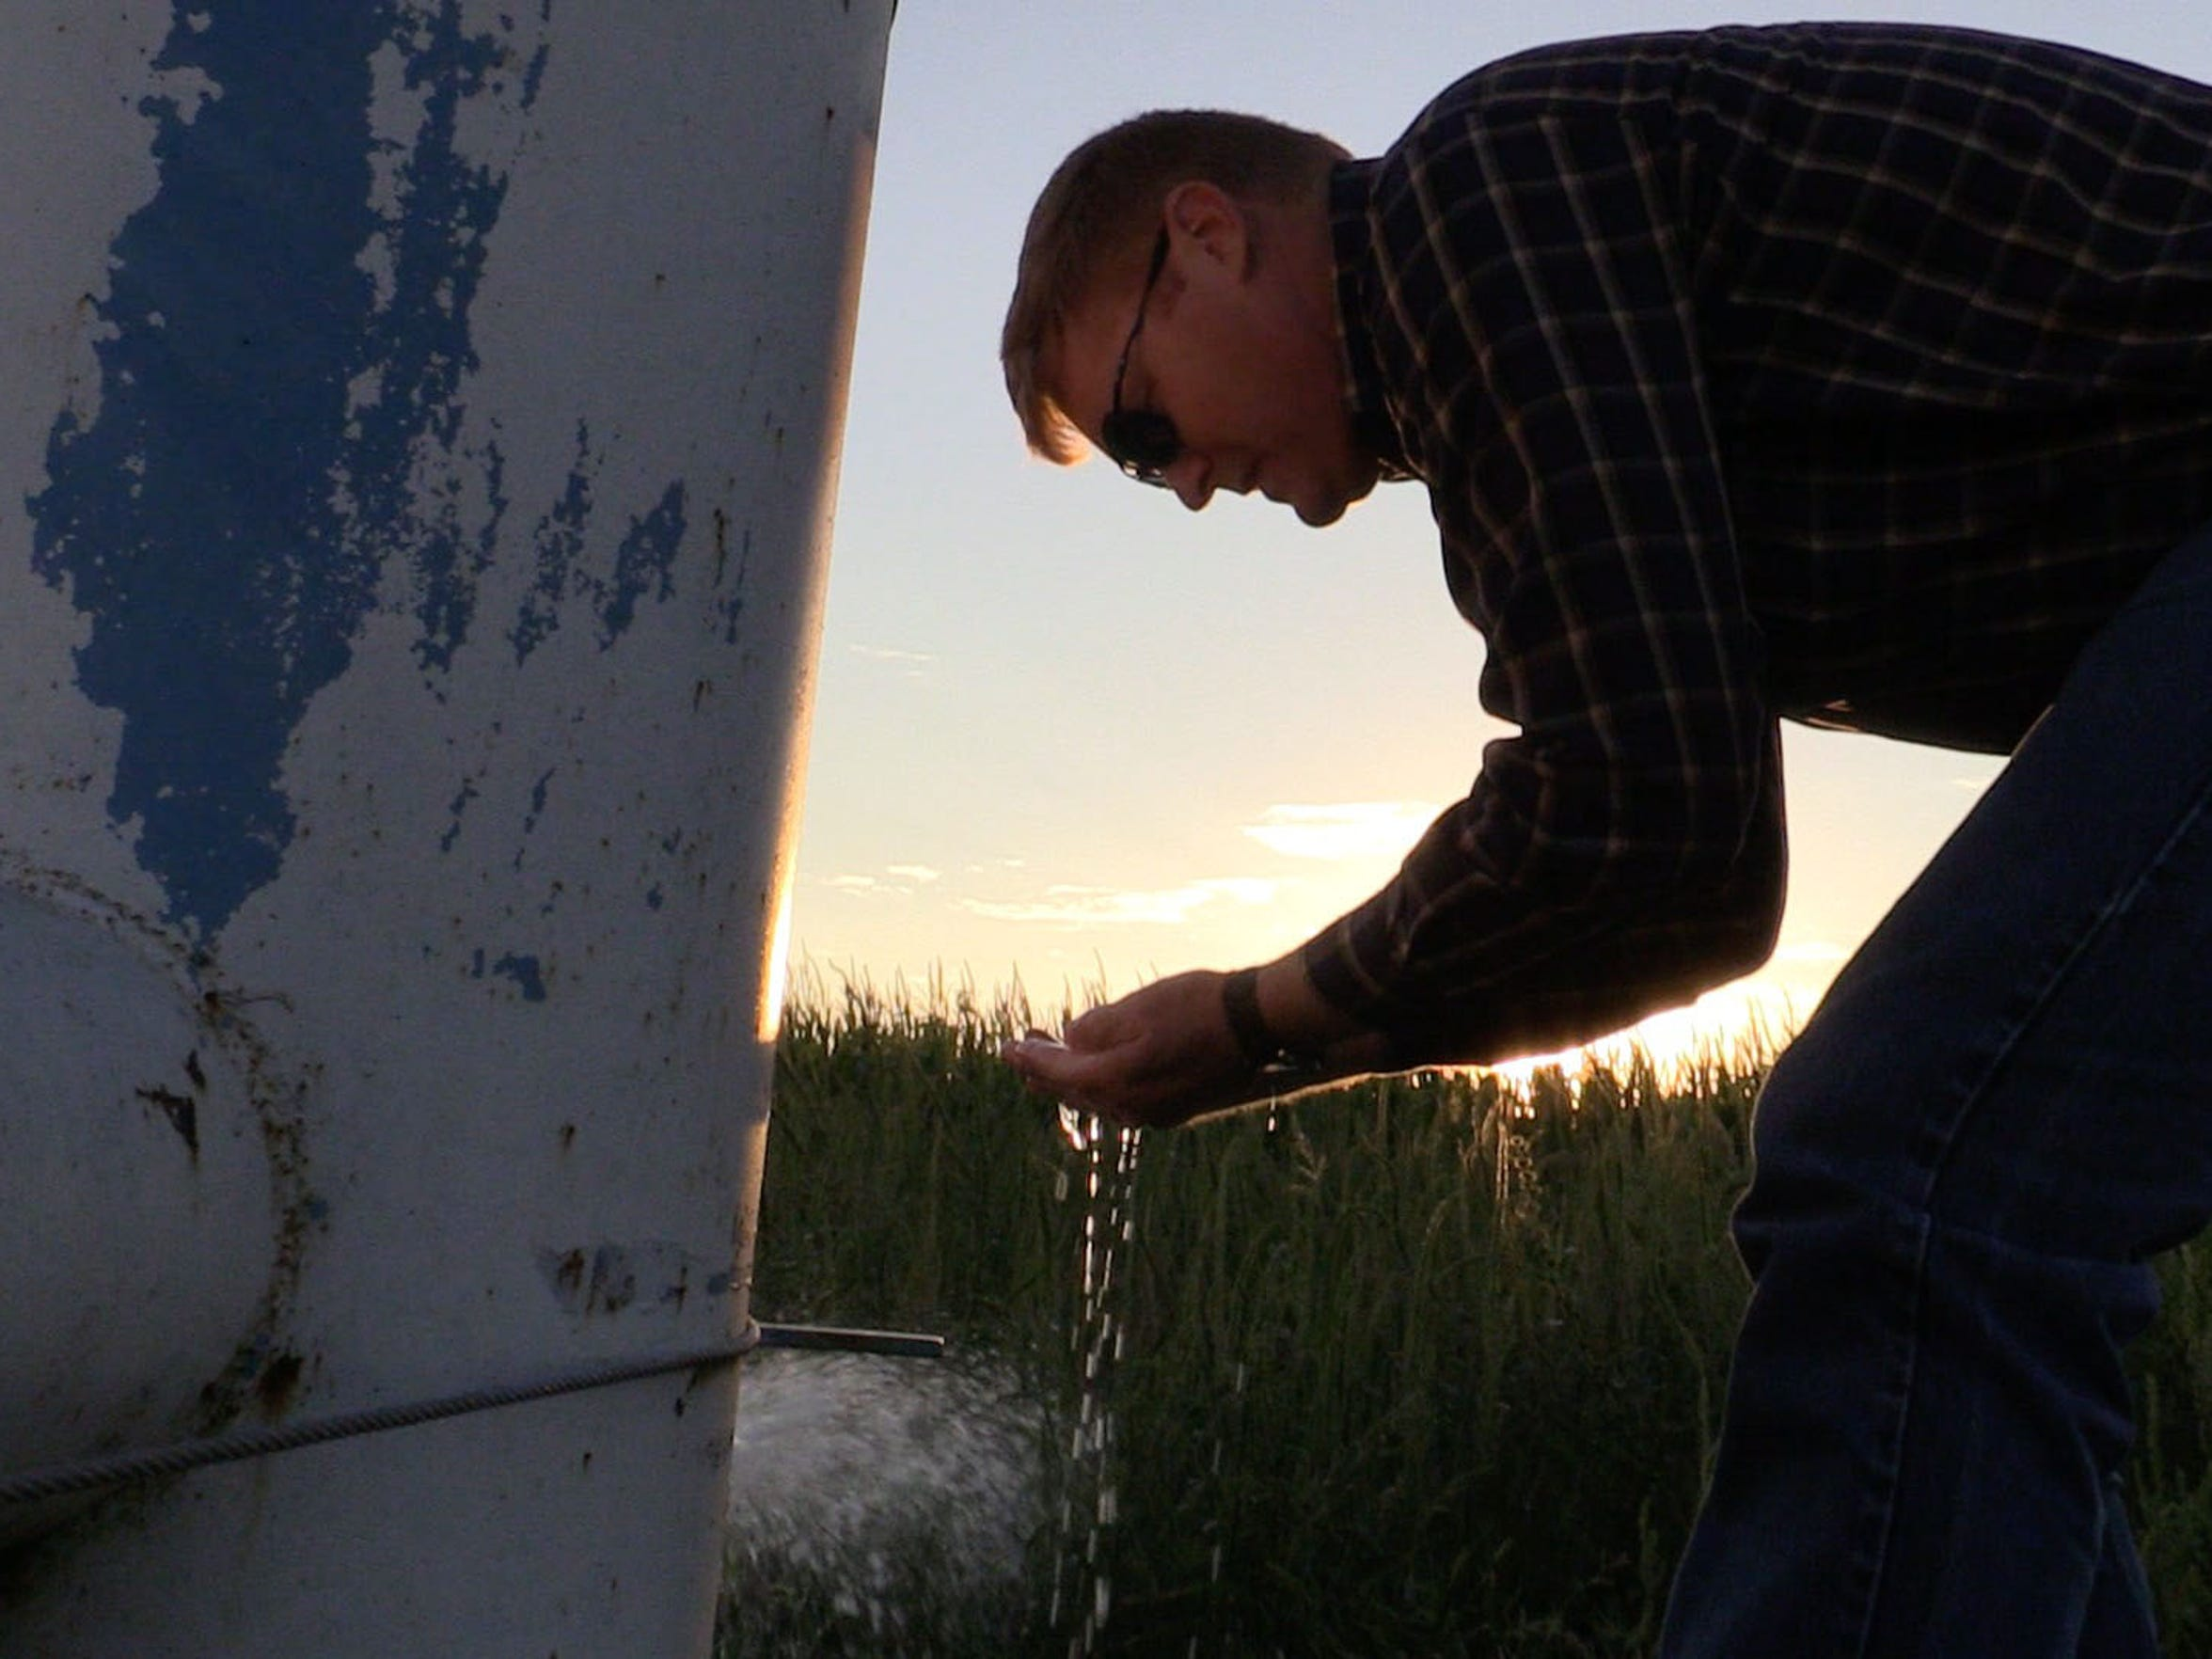 Jay Garetson lets water run into his hands from a well on his family's farm near Sublette, Kansas. He saw fine bubbles in the water and said that indicates the well is weakening as the Ogallala Aquifer declines. He said he's worried about the future of farming in the area.